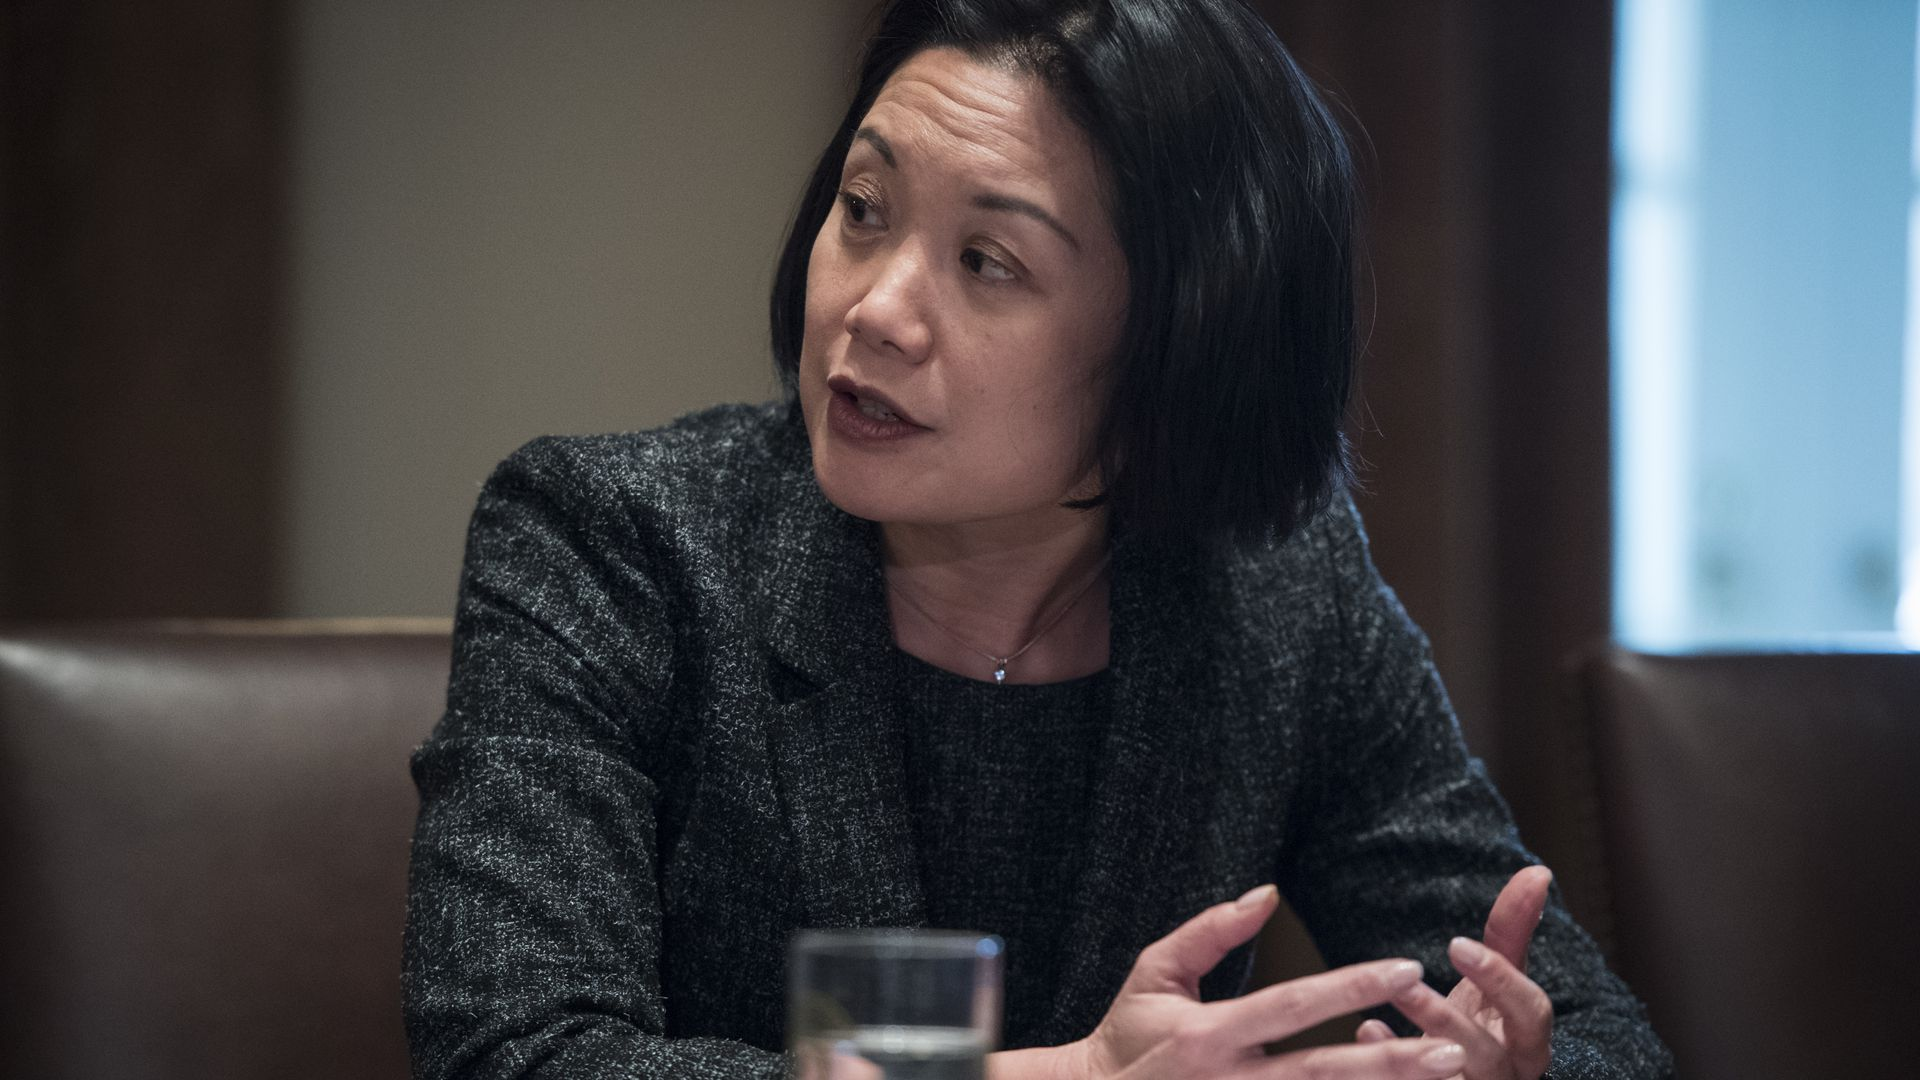 U.S. attorney general for the District of Columbia, Jessie Liu.